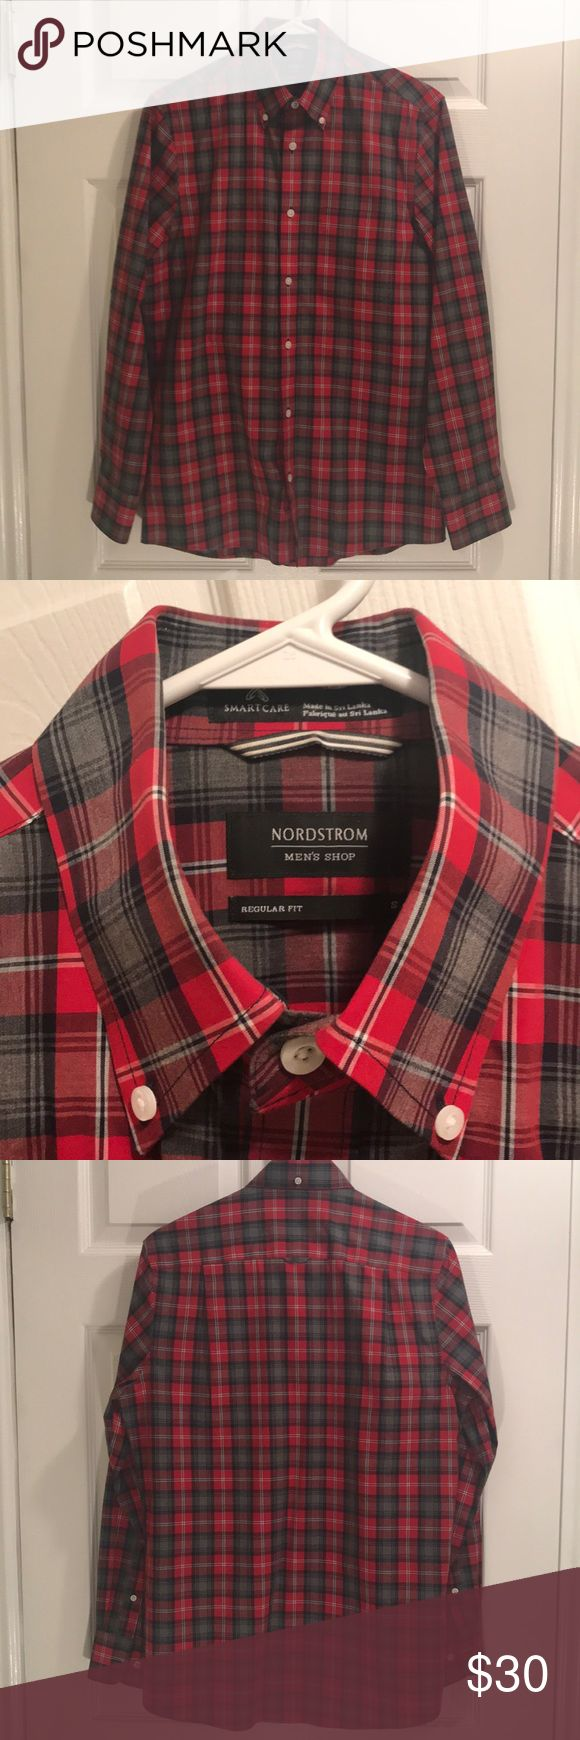 """Nordstrom Dress Shirt in Classic Plaid for Men Nordstrom Brand red, navy, and gray dress shirt for men. It's listed as a regular fit, but I'm 6'2"""" and 150 lbs (thin) and this fits me like a modern tailored shirt. I also have long arms and this is one shirt where the sleeves are actually long enough. I love the fit, but the colors don't really compliment the rest of my wardrobe. Worn once. Nordstrom Shirts Dress Shirts"""